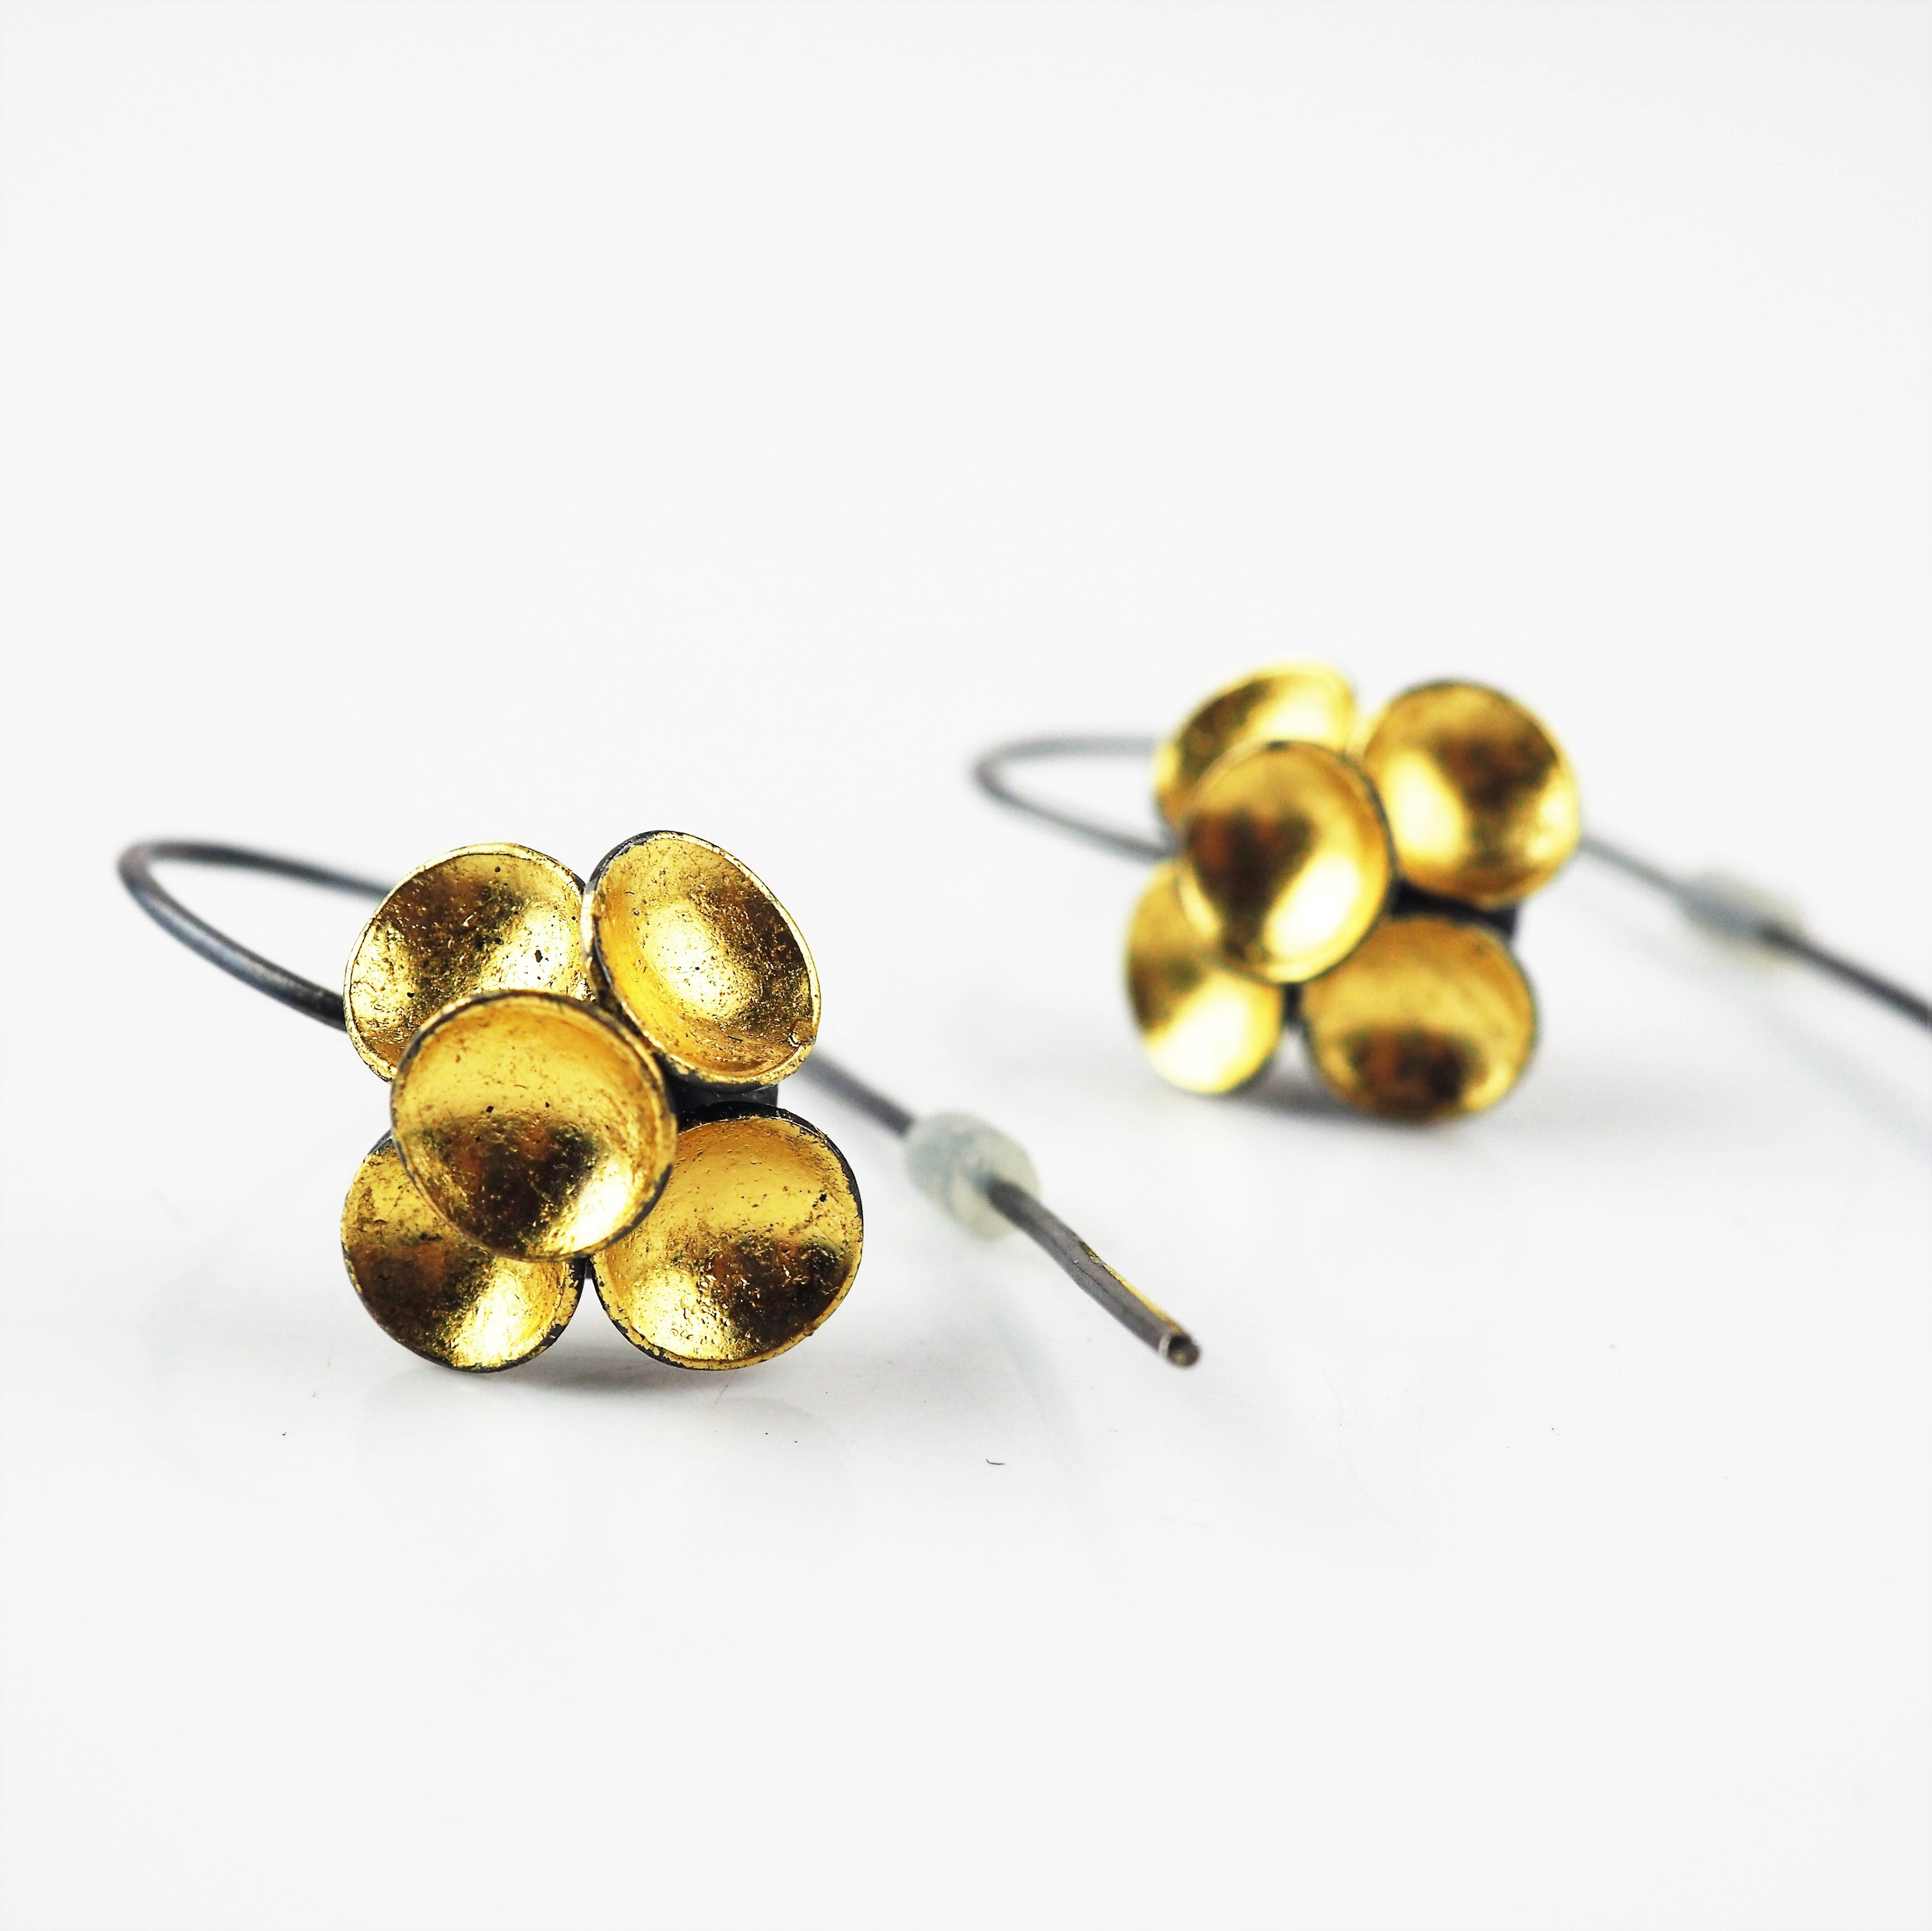 Wall, Jenifer – Gold Leaf Cluster Wire Earrings | Jenifer Wall | Primavera Gallery